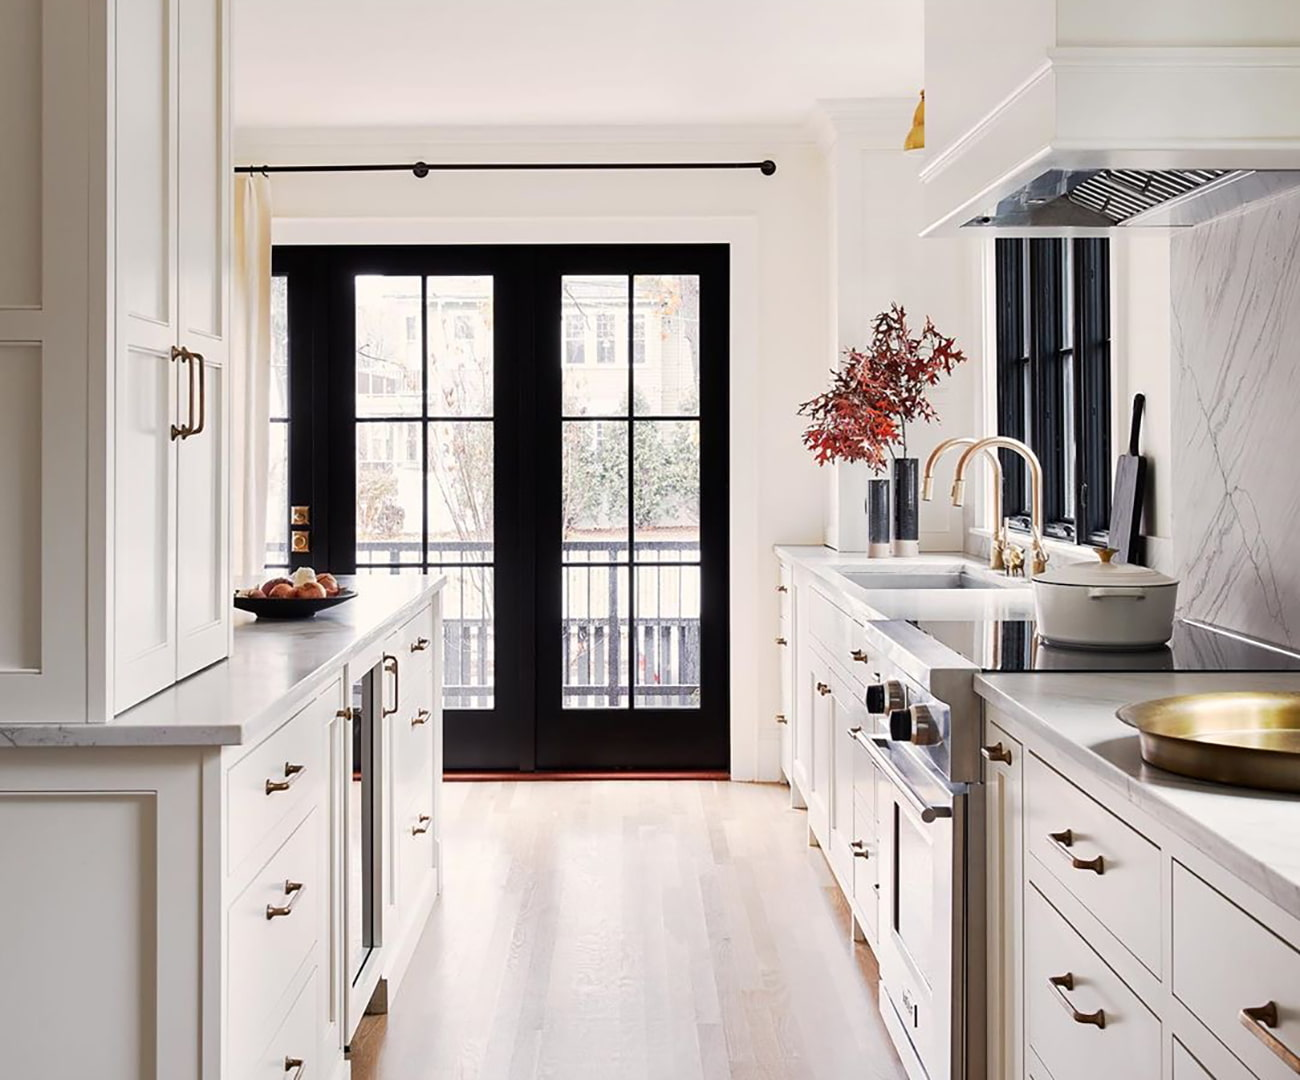 A white narrow kitchen has black hinged french patio doors on the far wall.